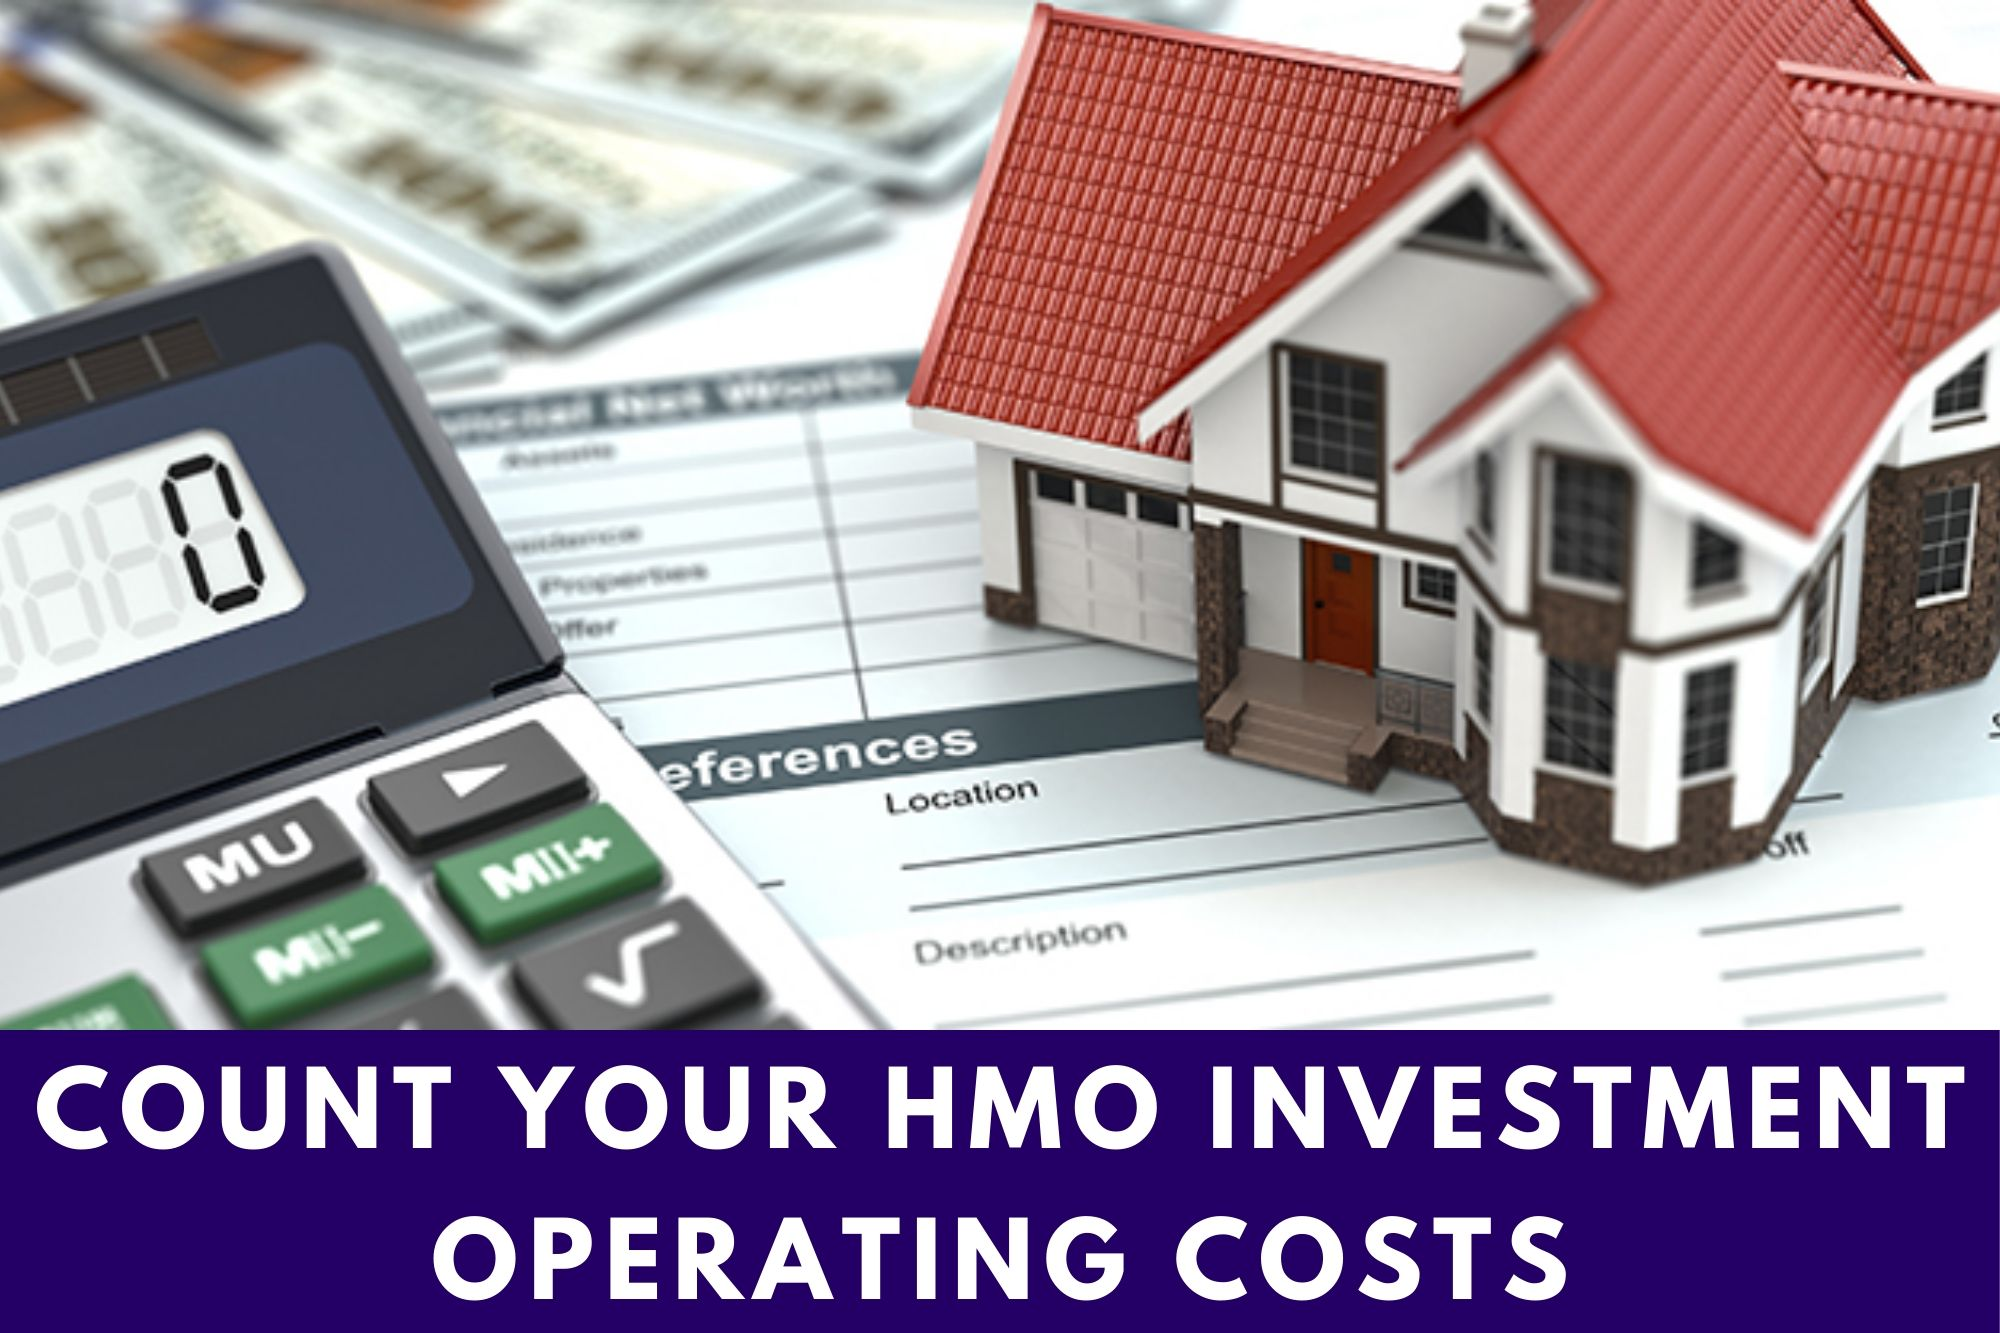 Count Operating Costs of Your HMO Investment